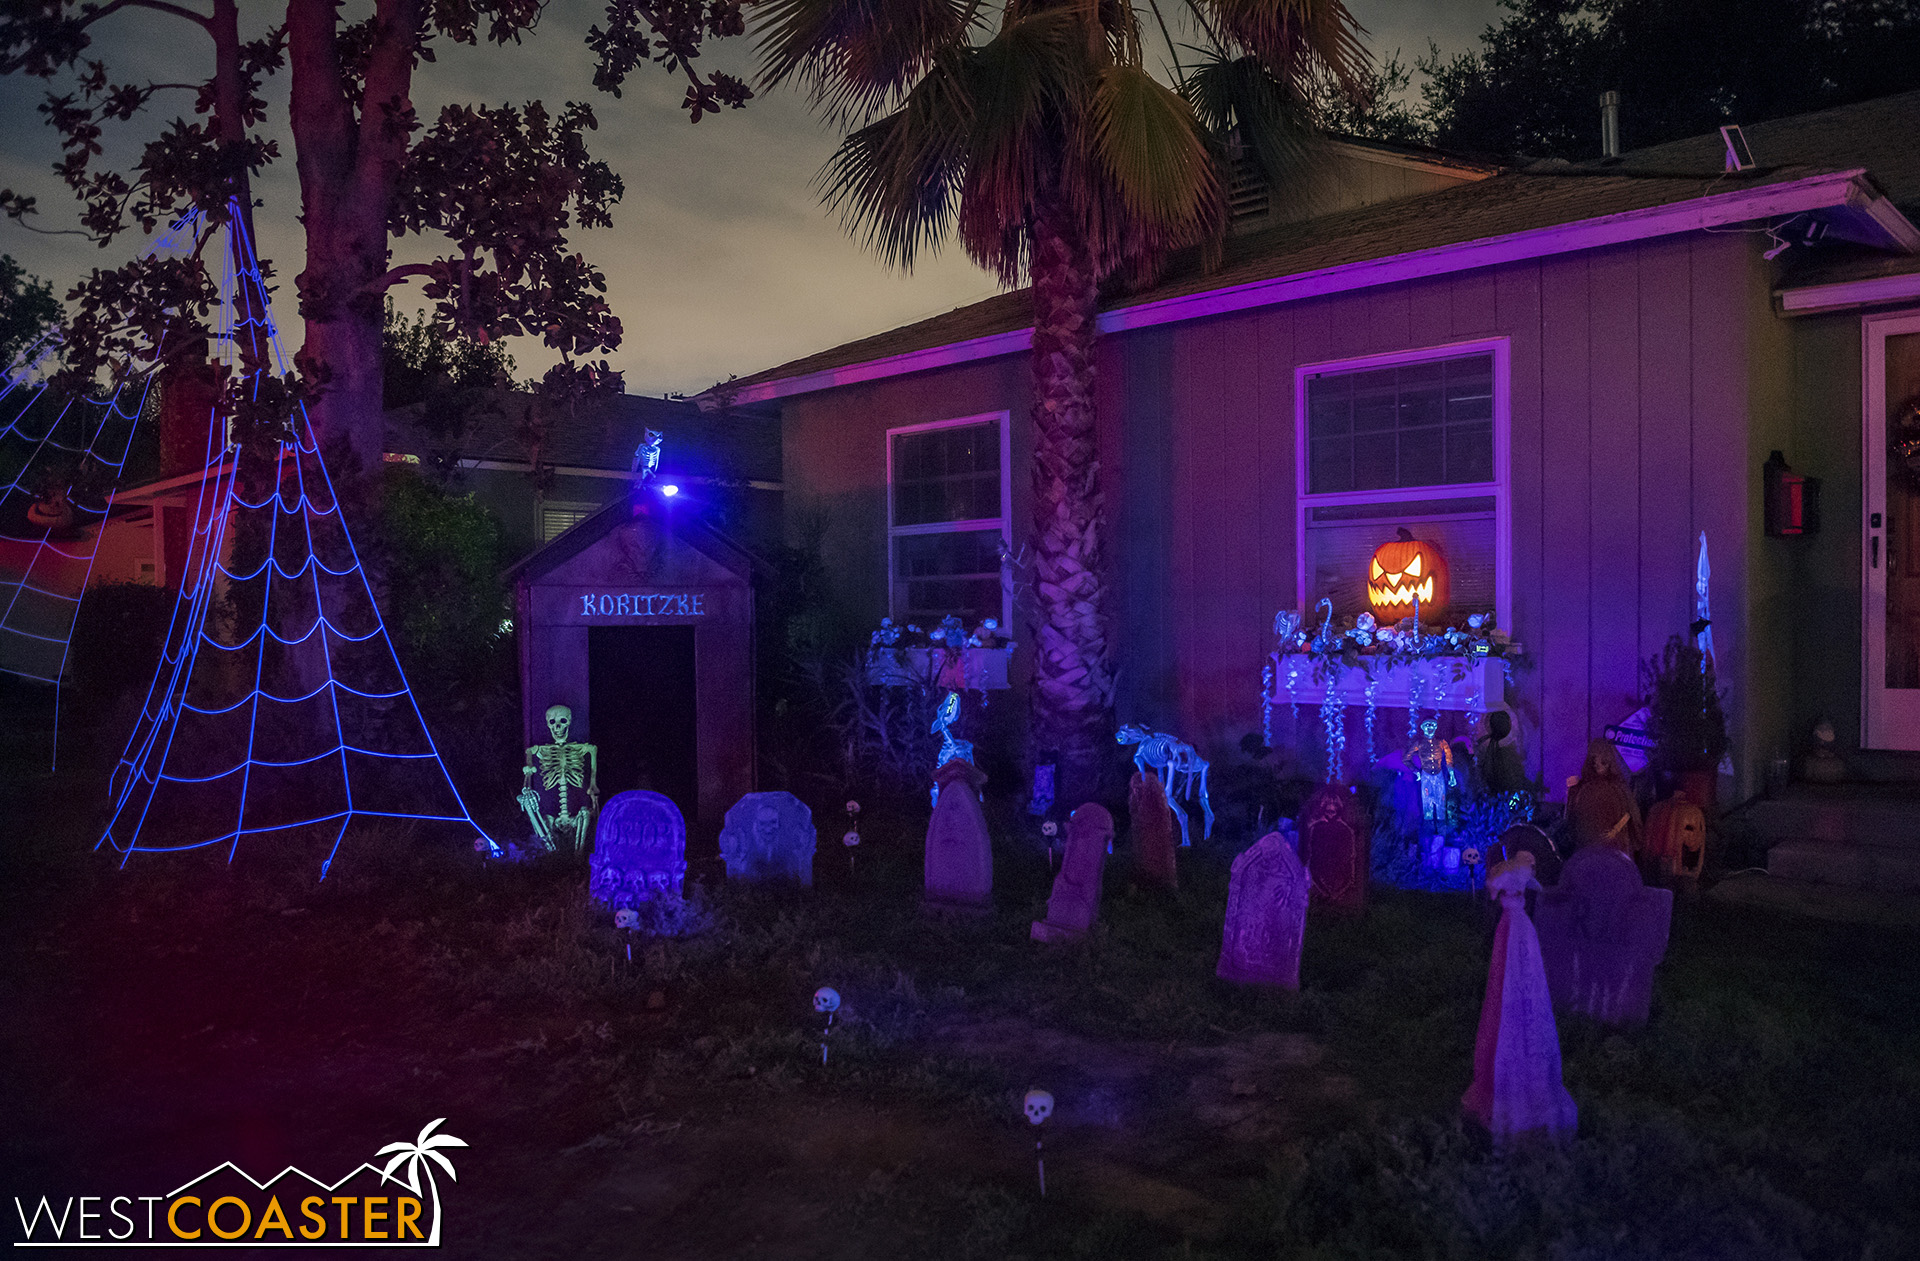 A creepy cemetery scene marks the front yard.